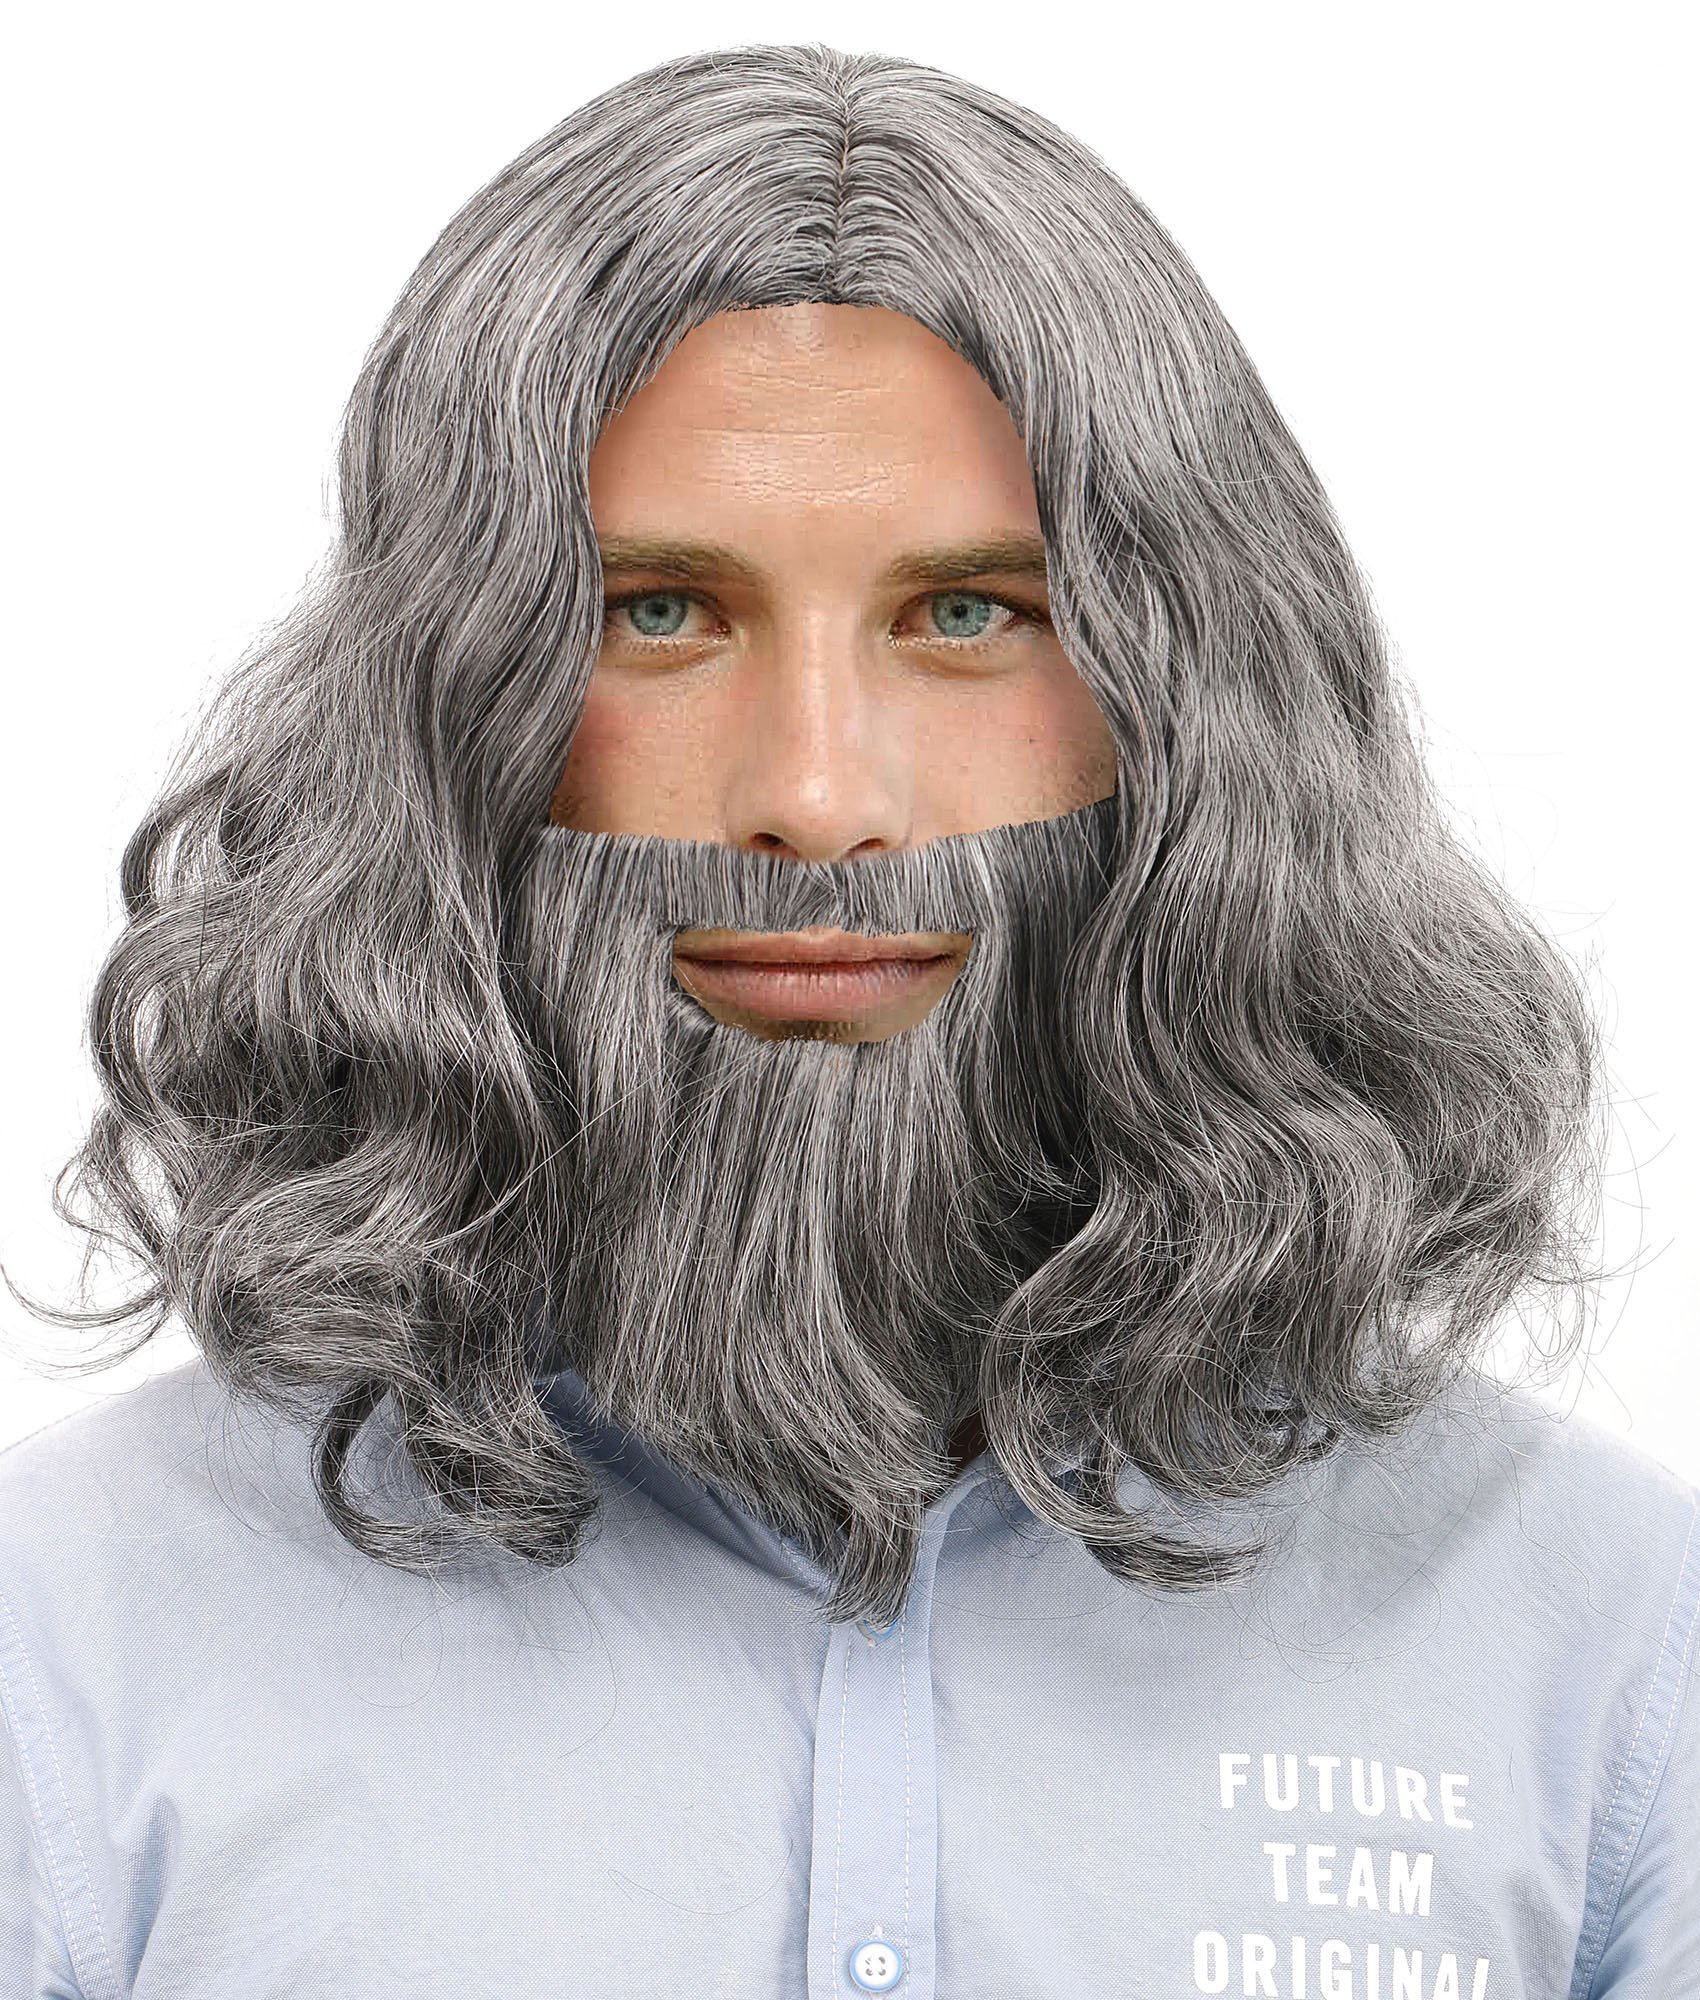 Men's Biblical Jesus Wigs and Beard Set for Cosplay Costume, Grey